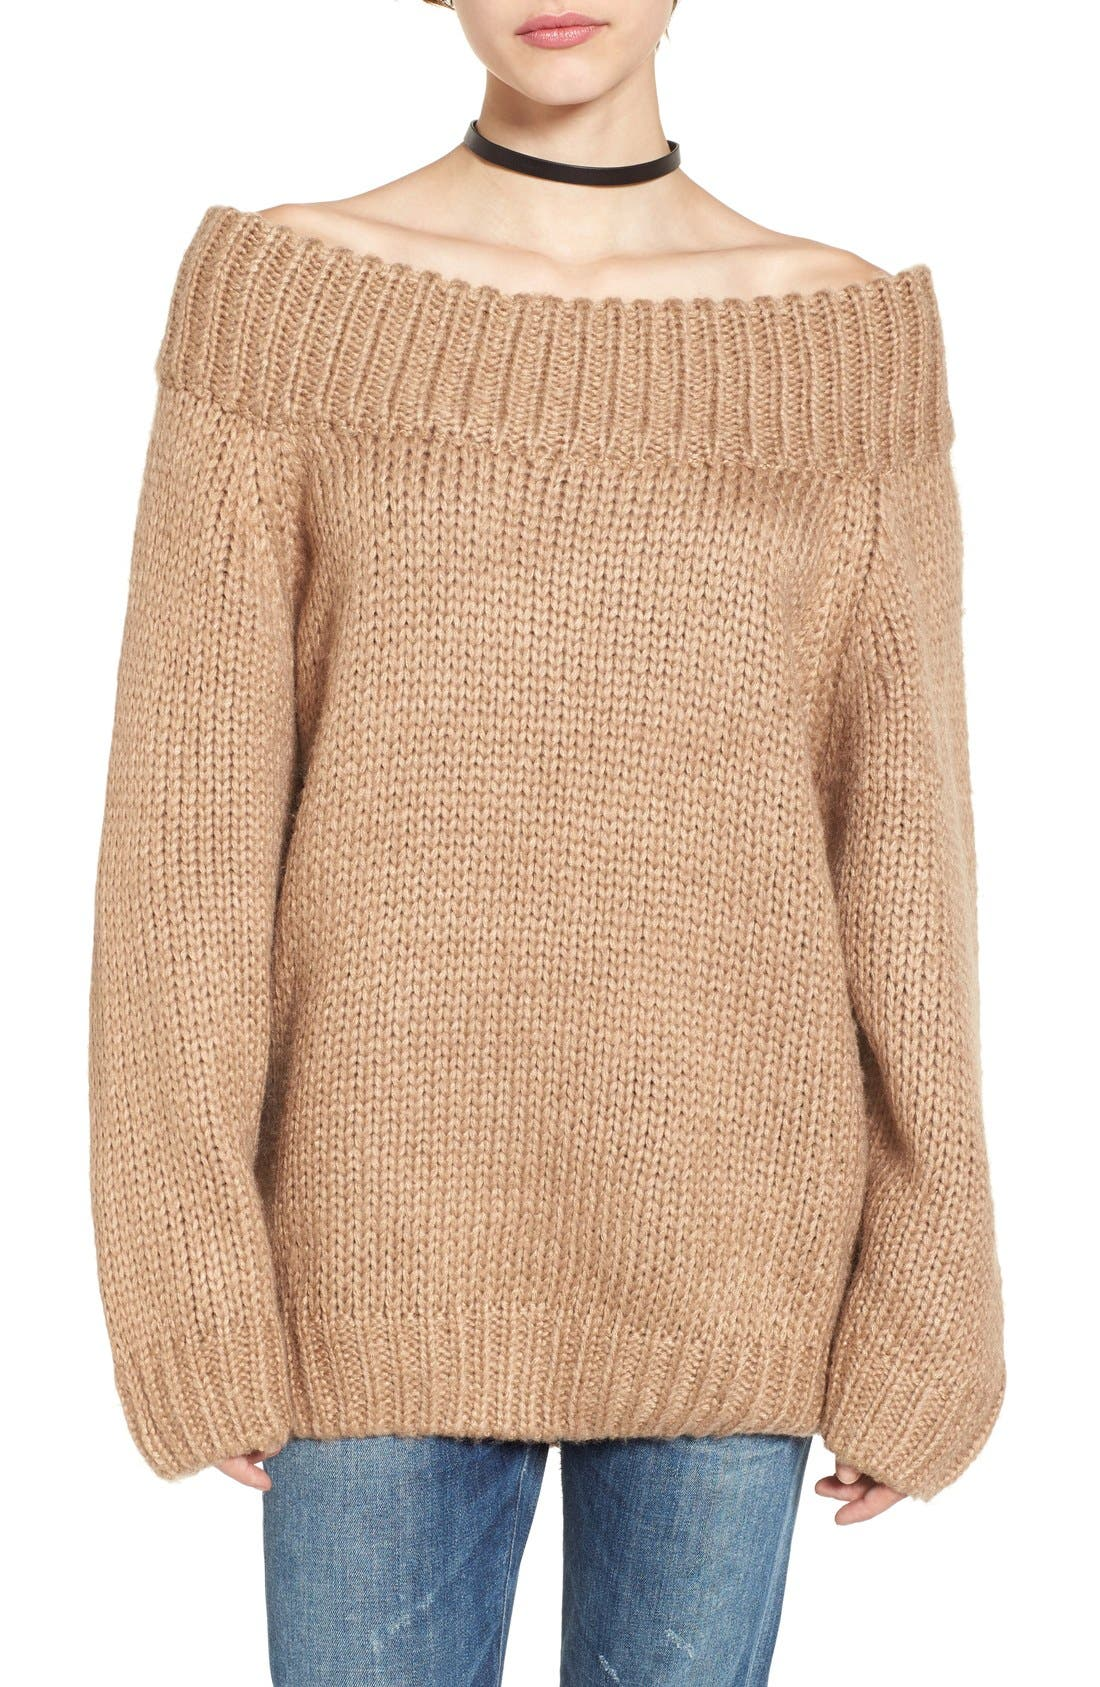 Main Image - Cotton Emporium Off the Shoulder Knit Pullover